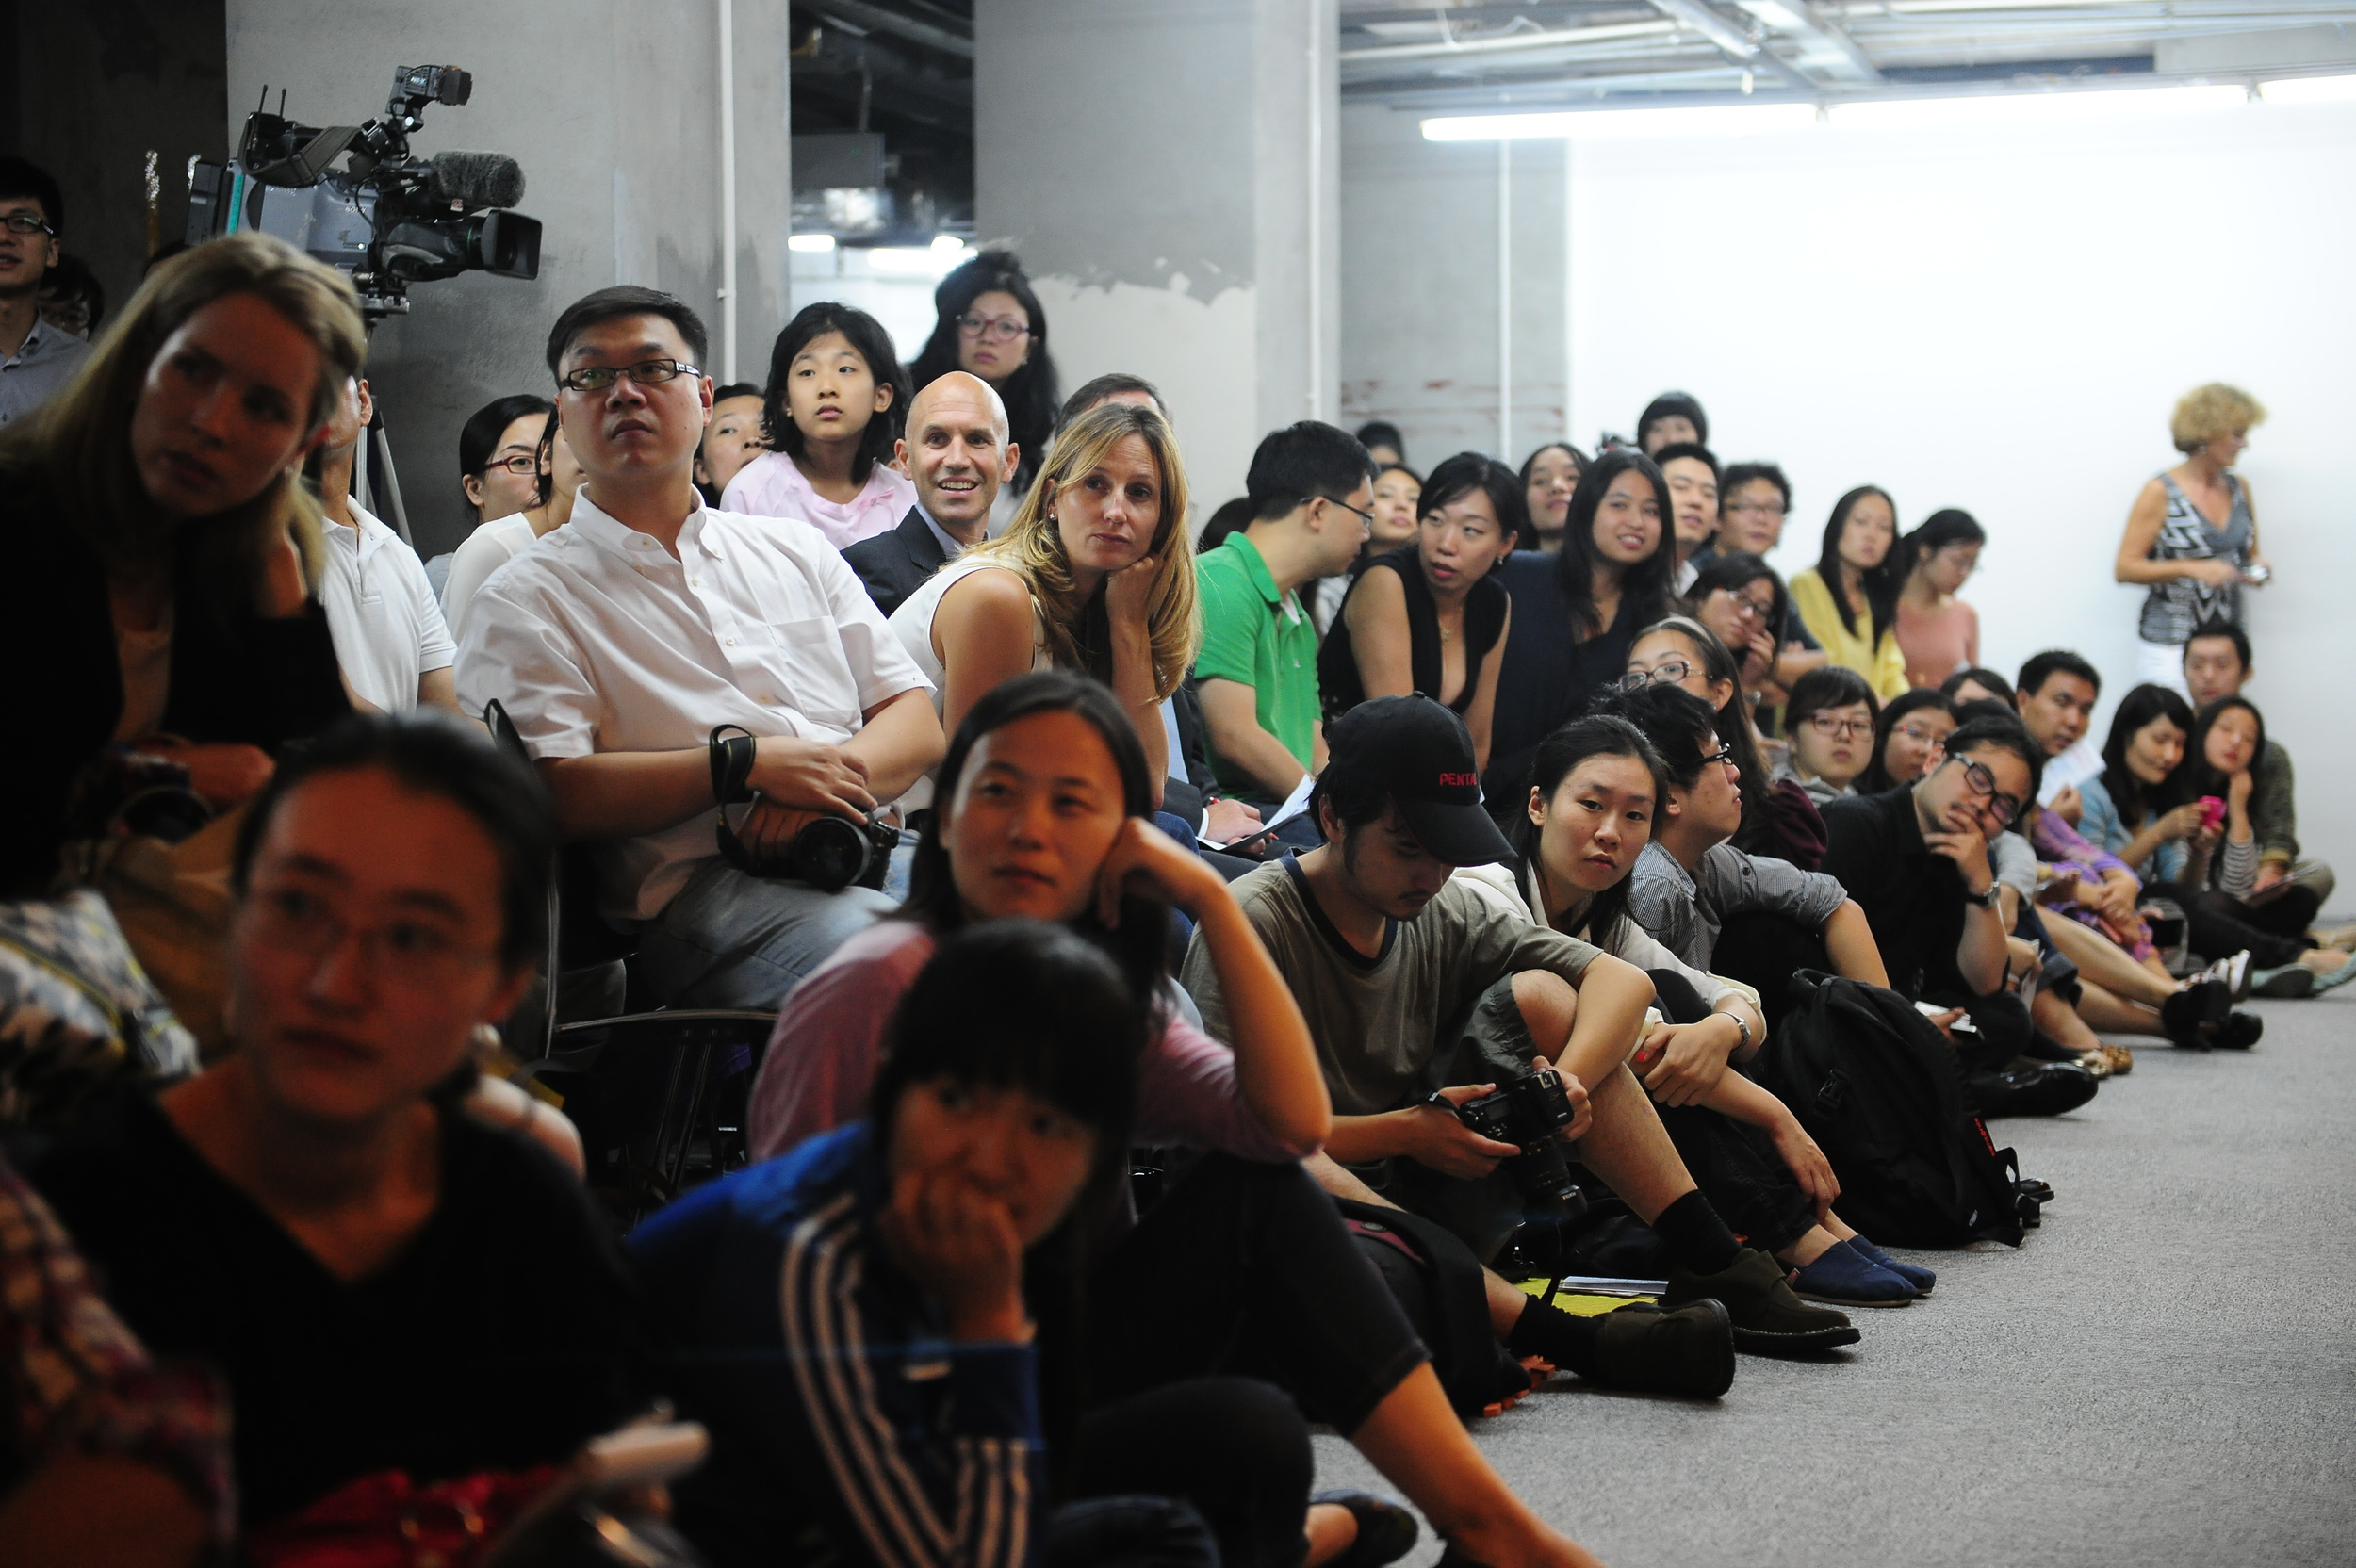 The audience were totally immersed into the performance.